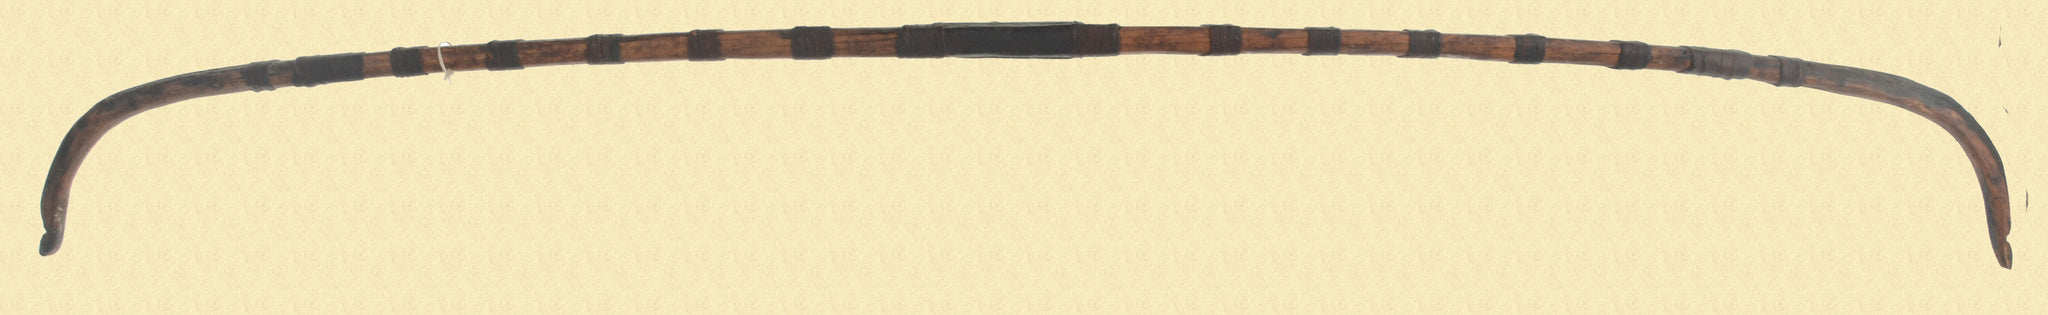 ANTIQUE WOODEN BOW